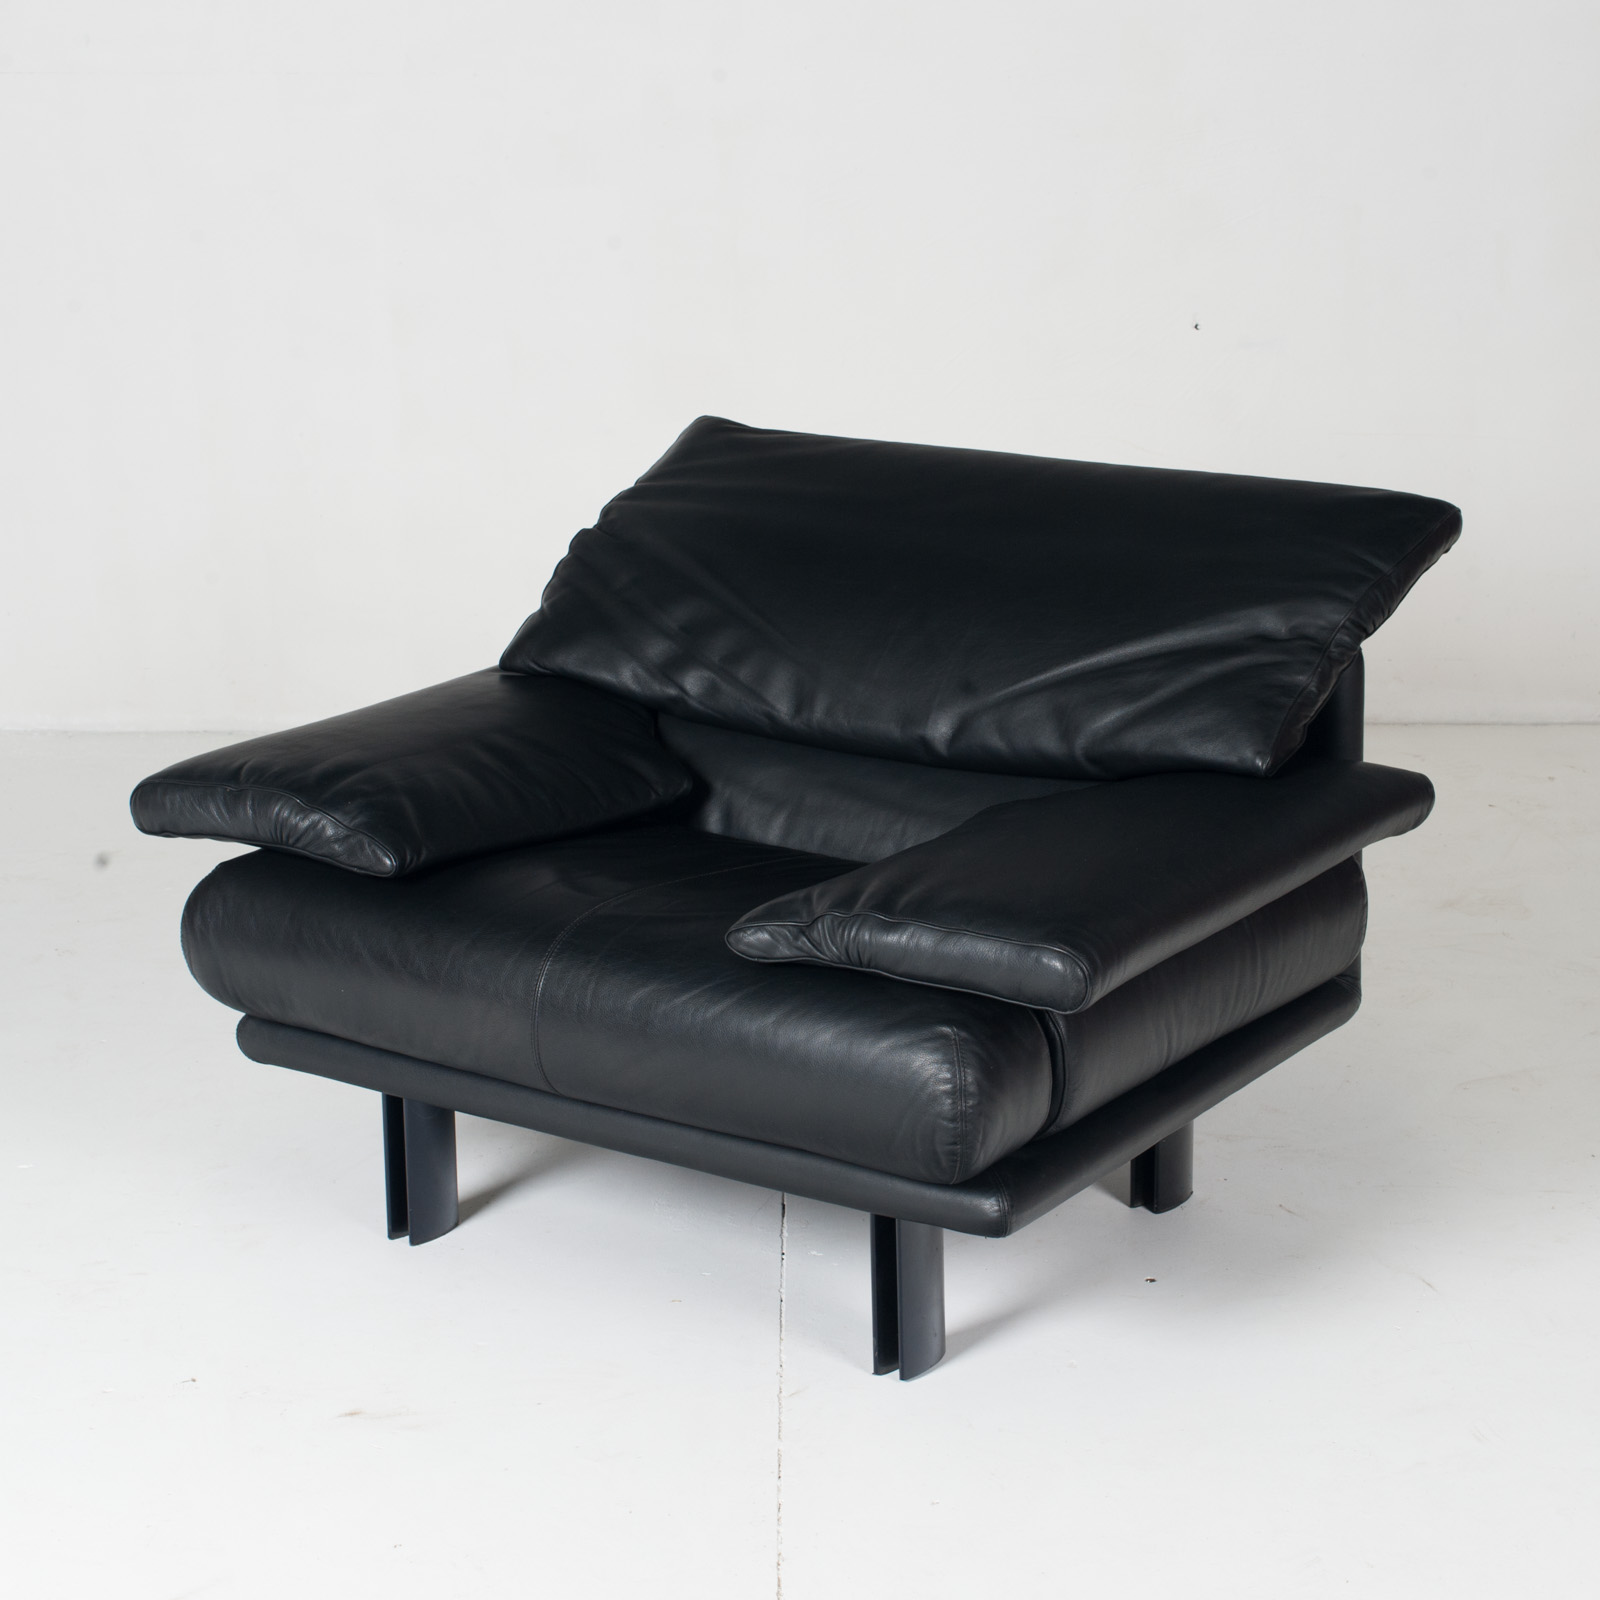 Alanda Armchair By Paolo Piva For B&b Italia In Black Leather, 1980s, Italy 5